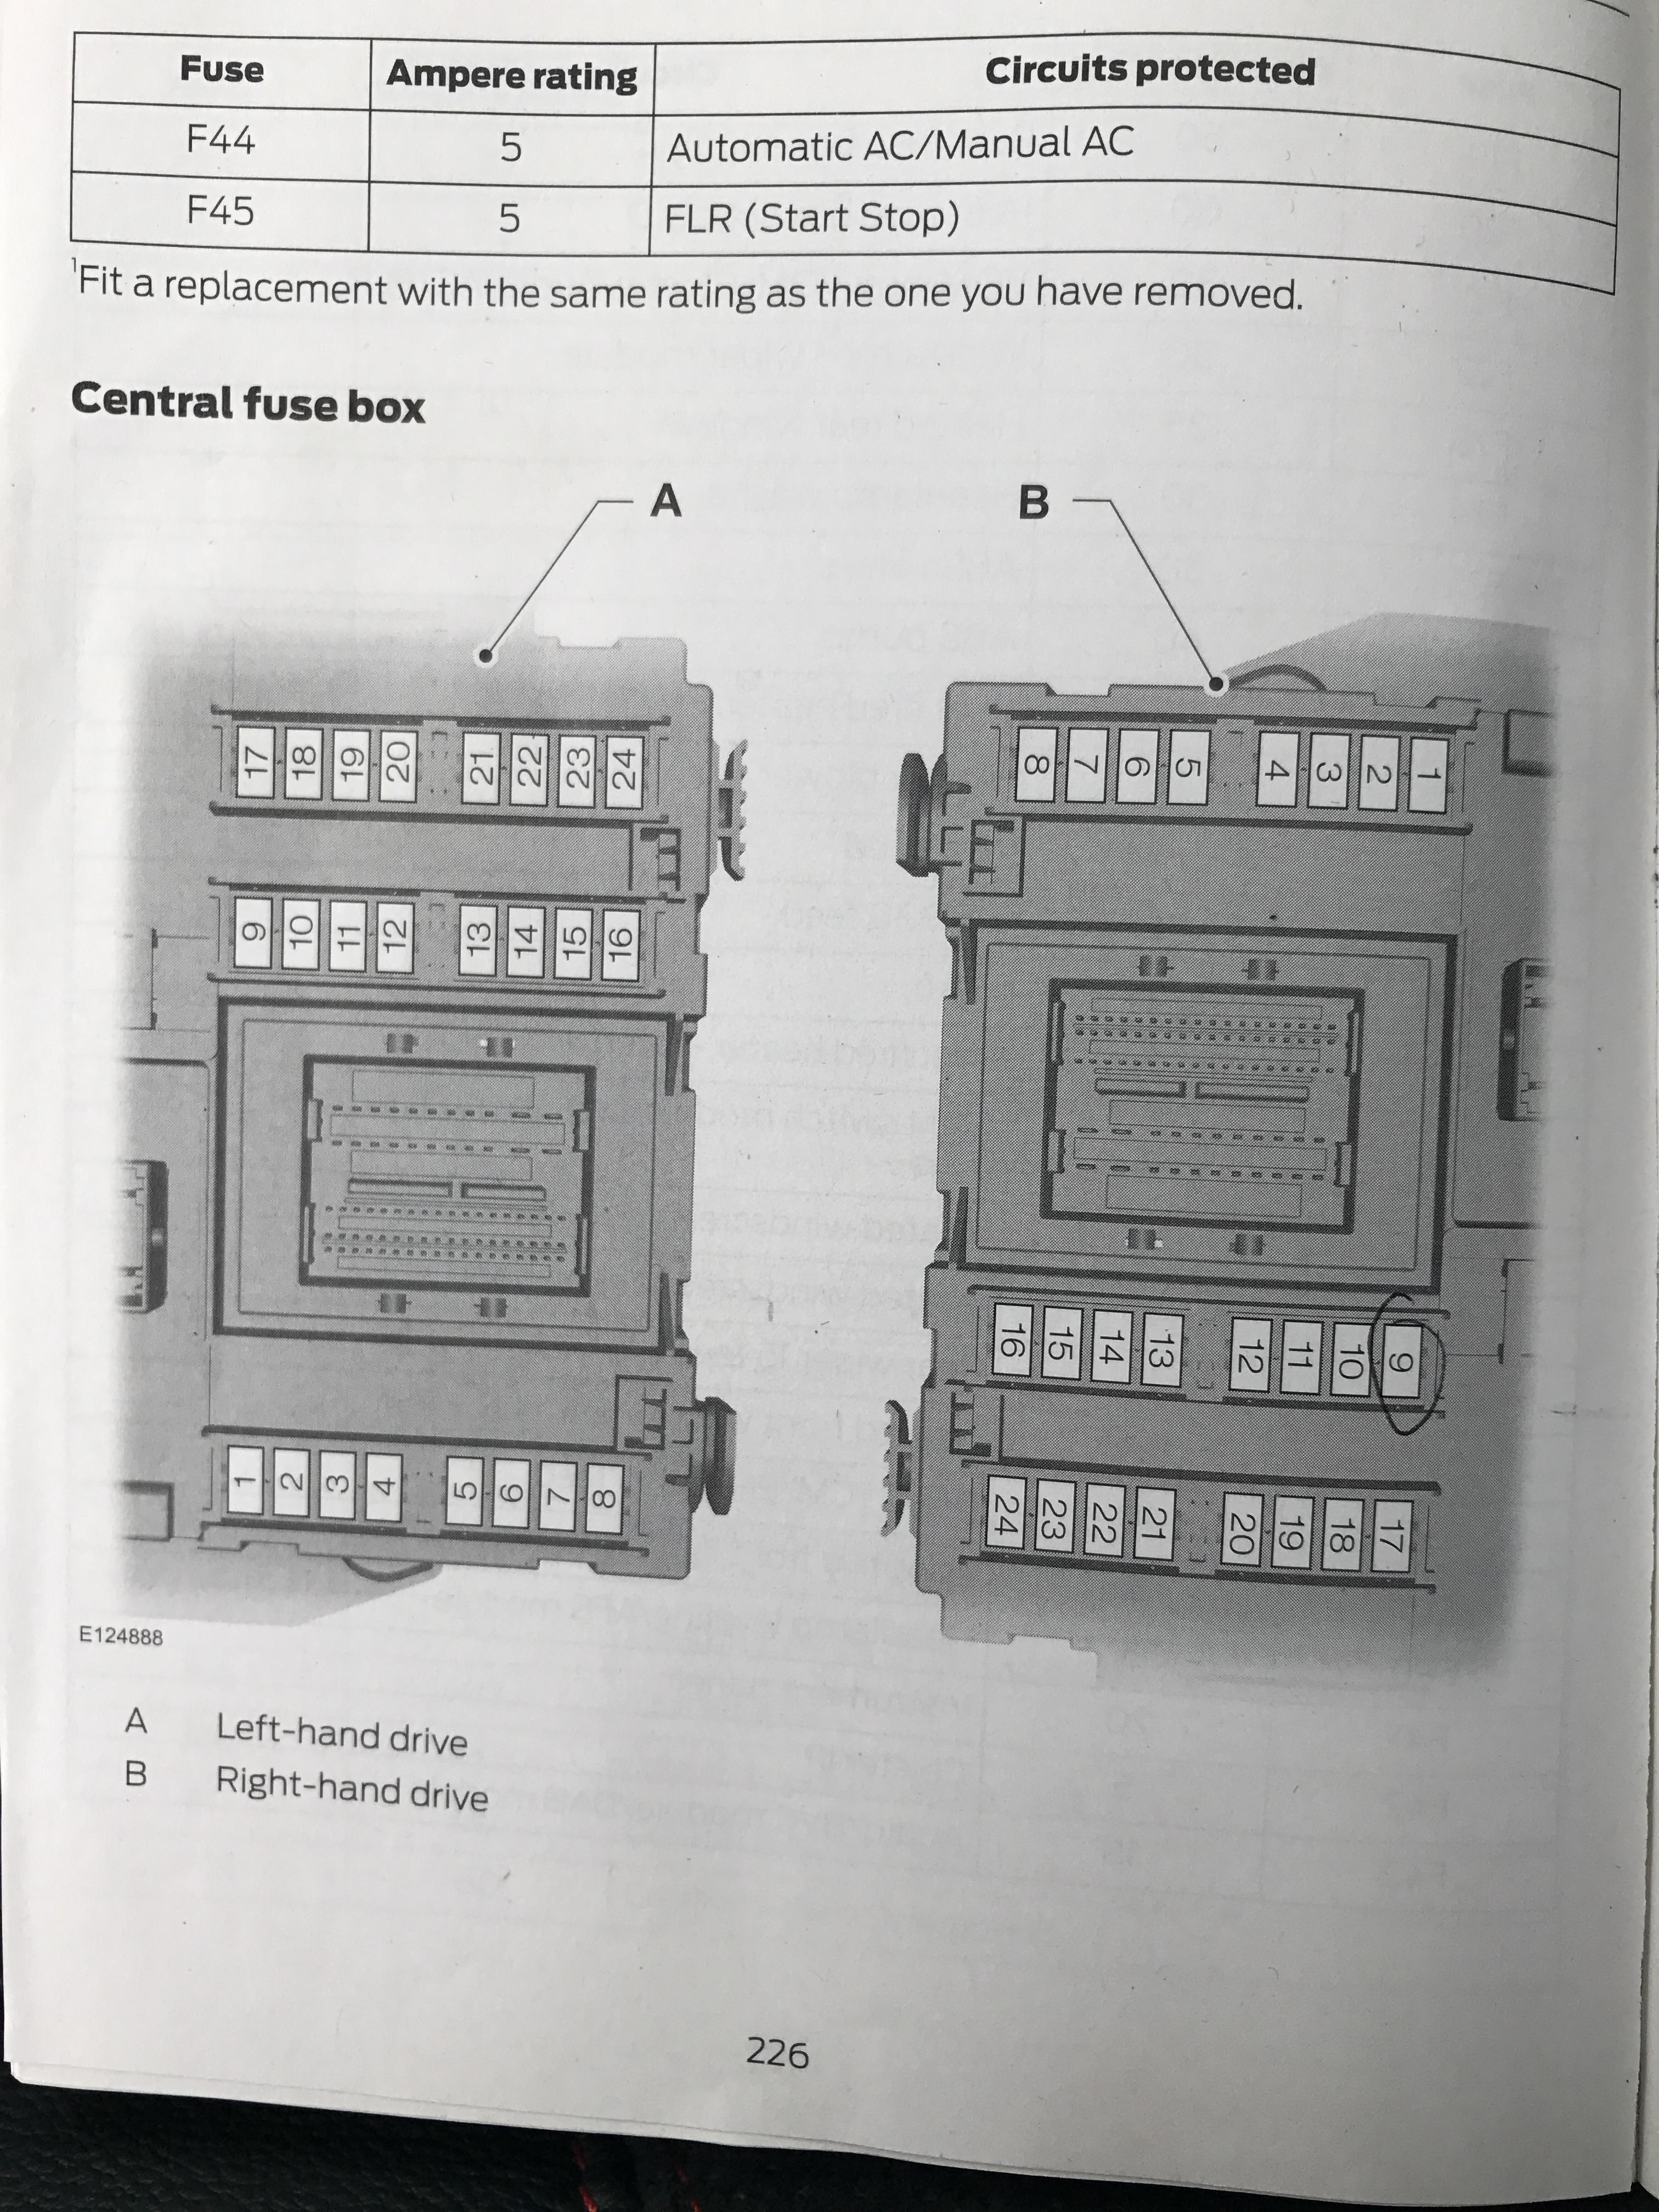 615ef3e ford s max fuse box wiring resources 2001 ford e250 fuse box diagram ford s max central fuse box #1